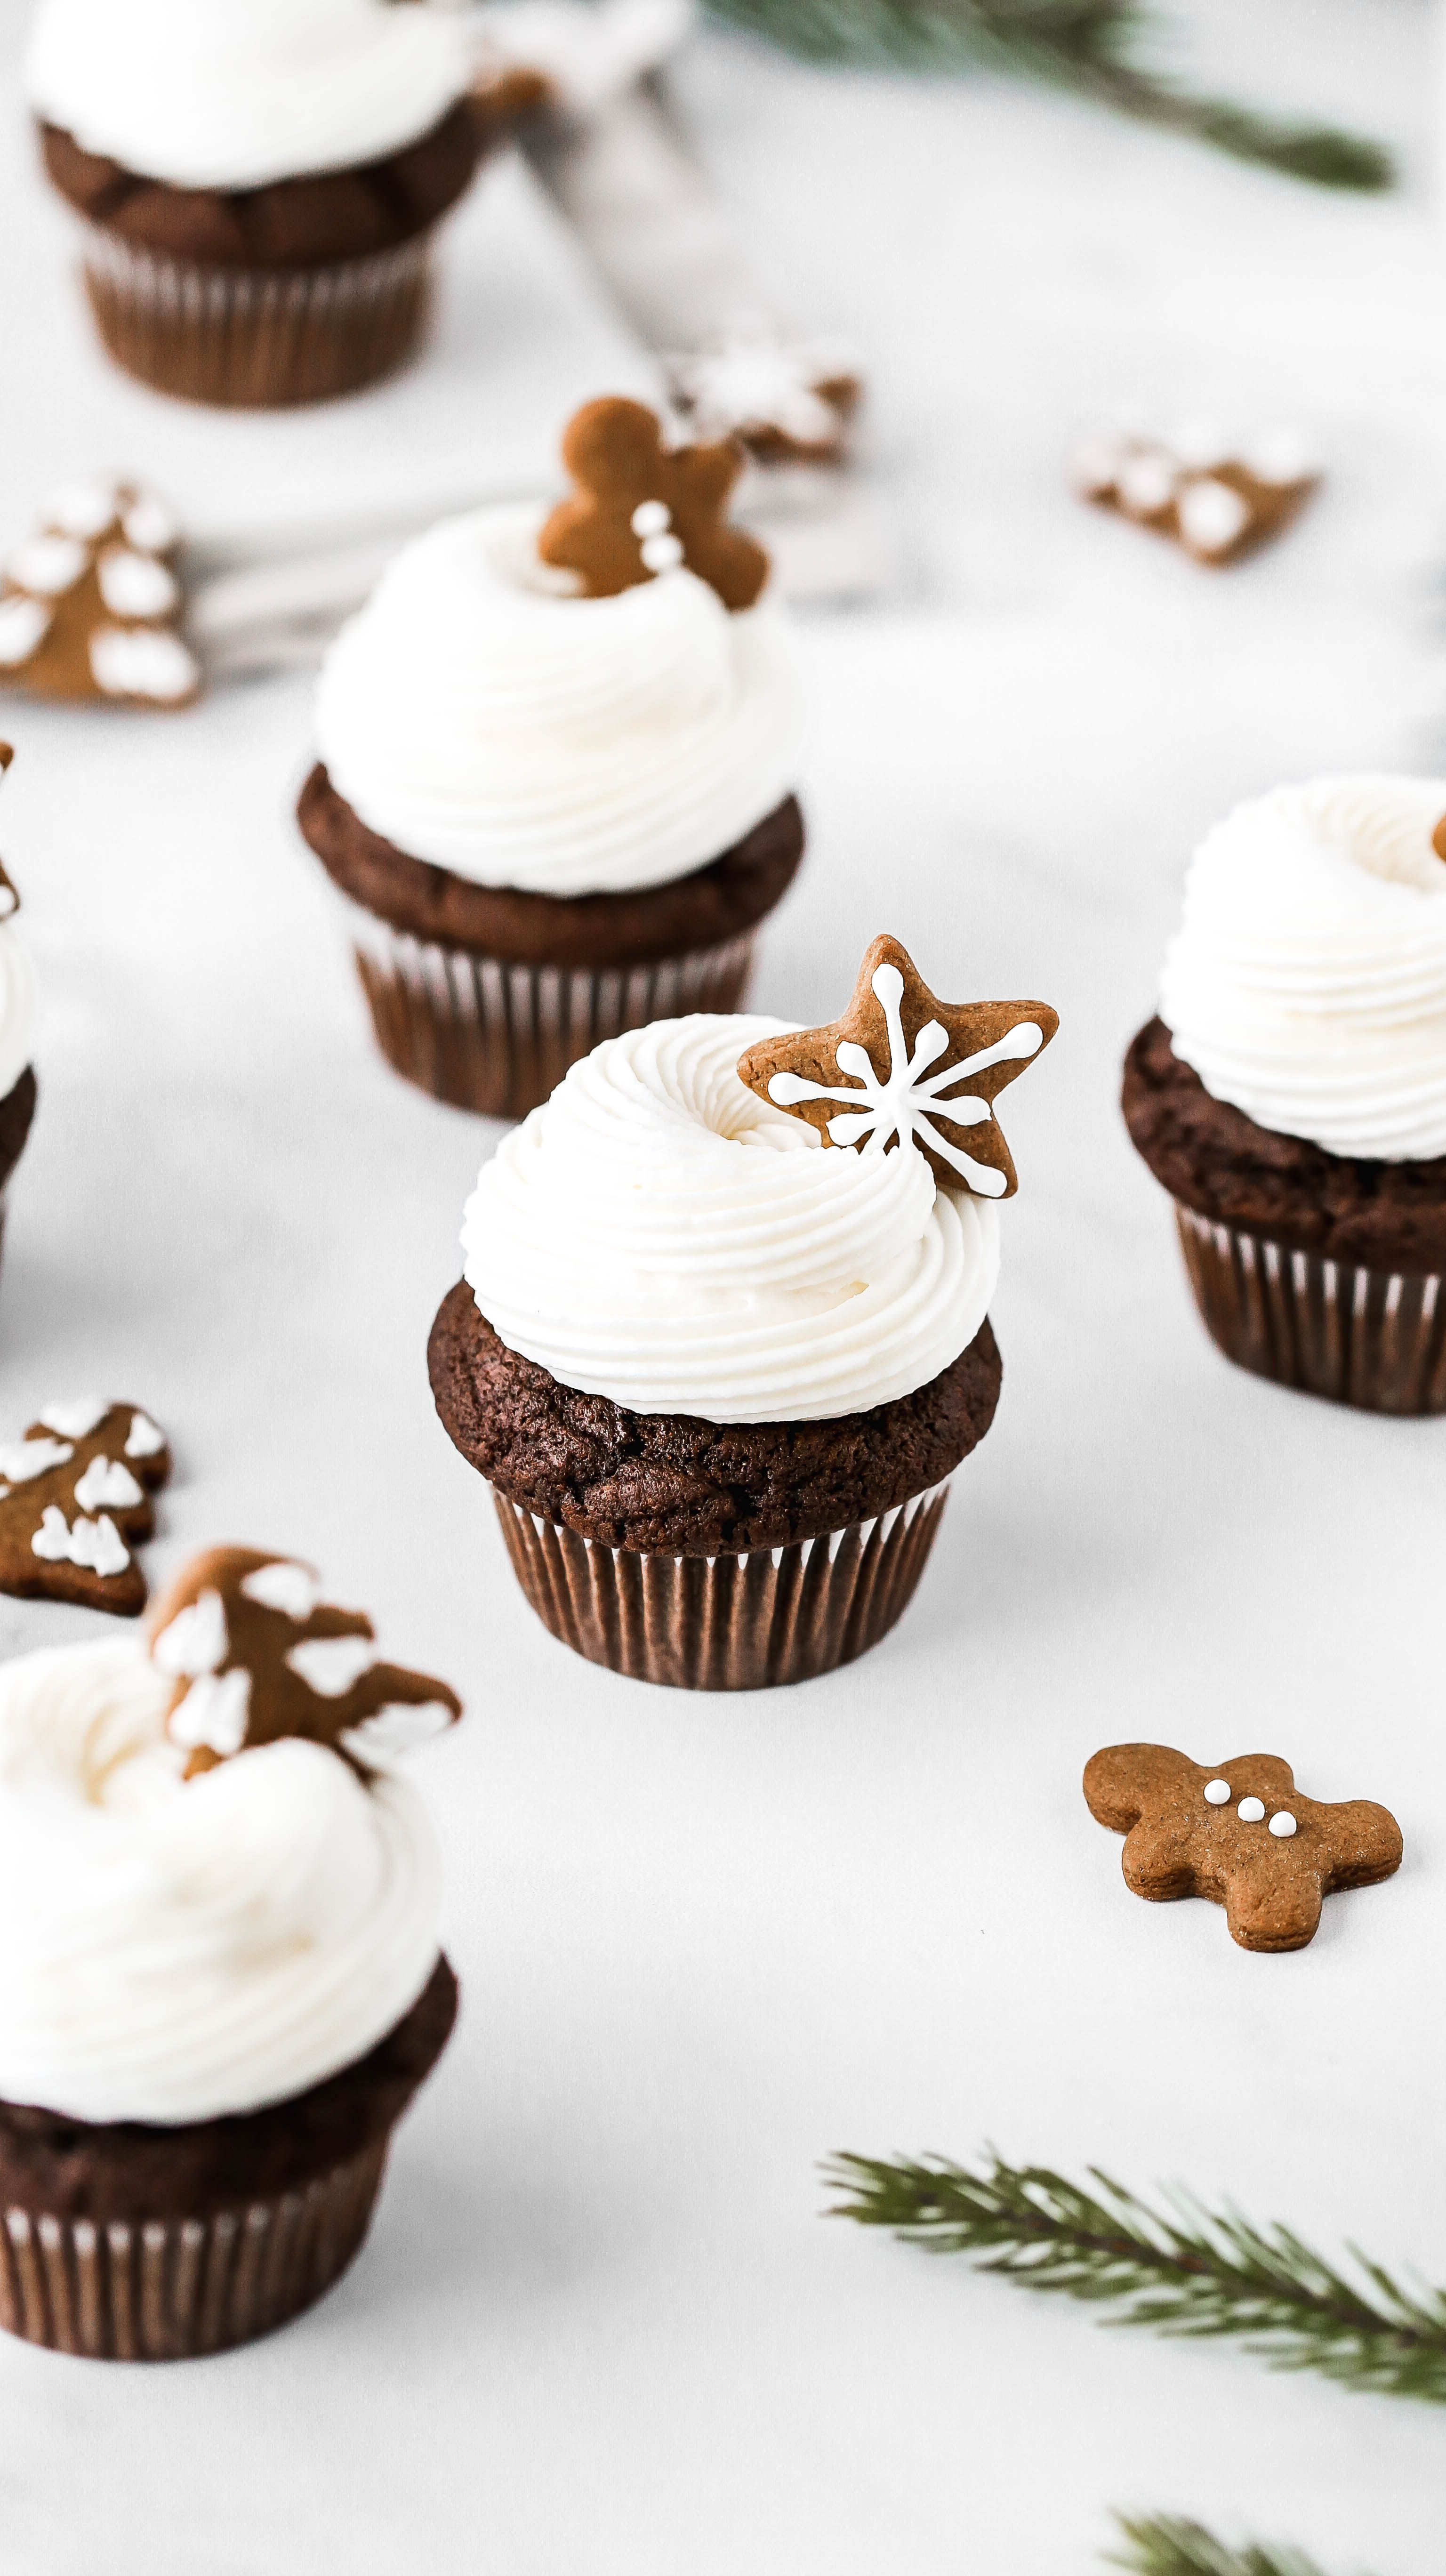 Frosted Gingerbread Cupcakes with Gingerbread Cookie Topper